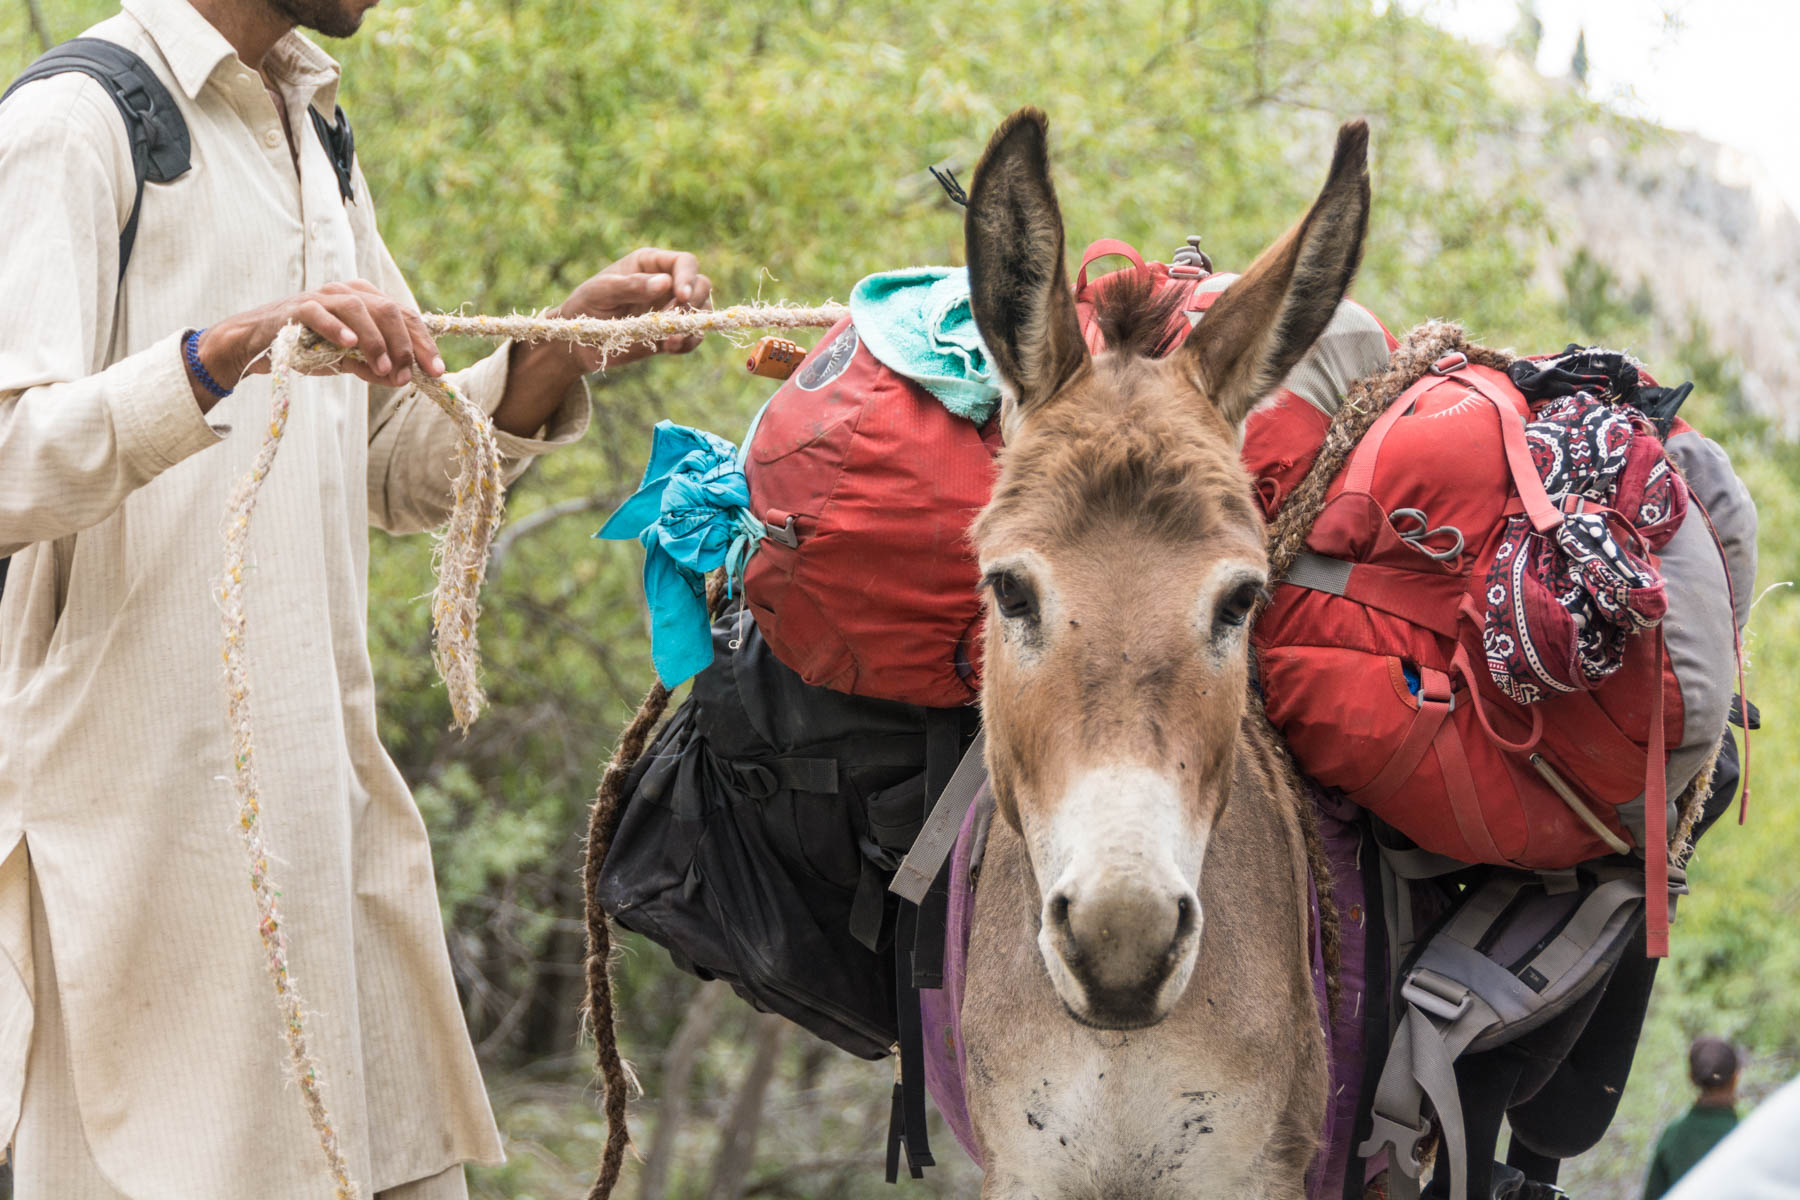 A donkey and porter on the way to Fairy Meadows, Pakistan